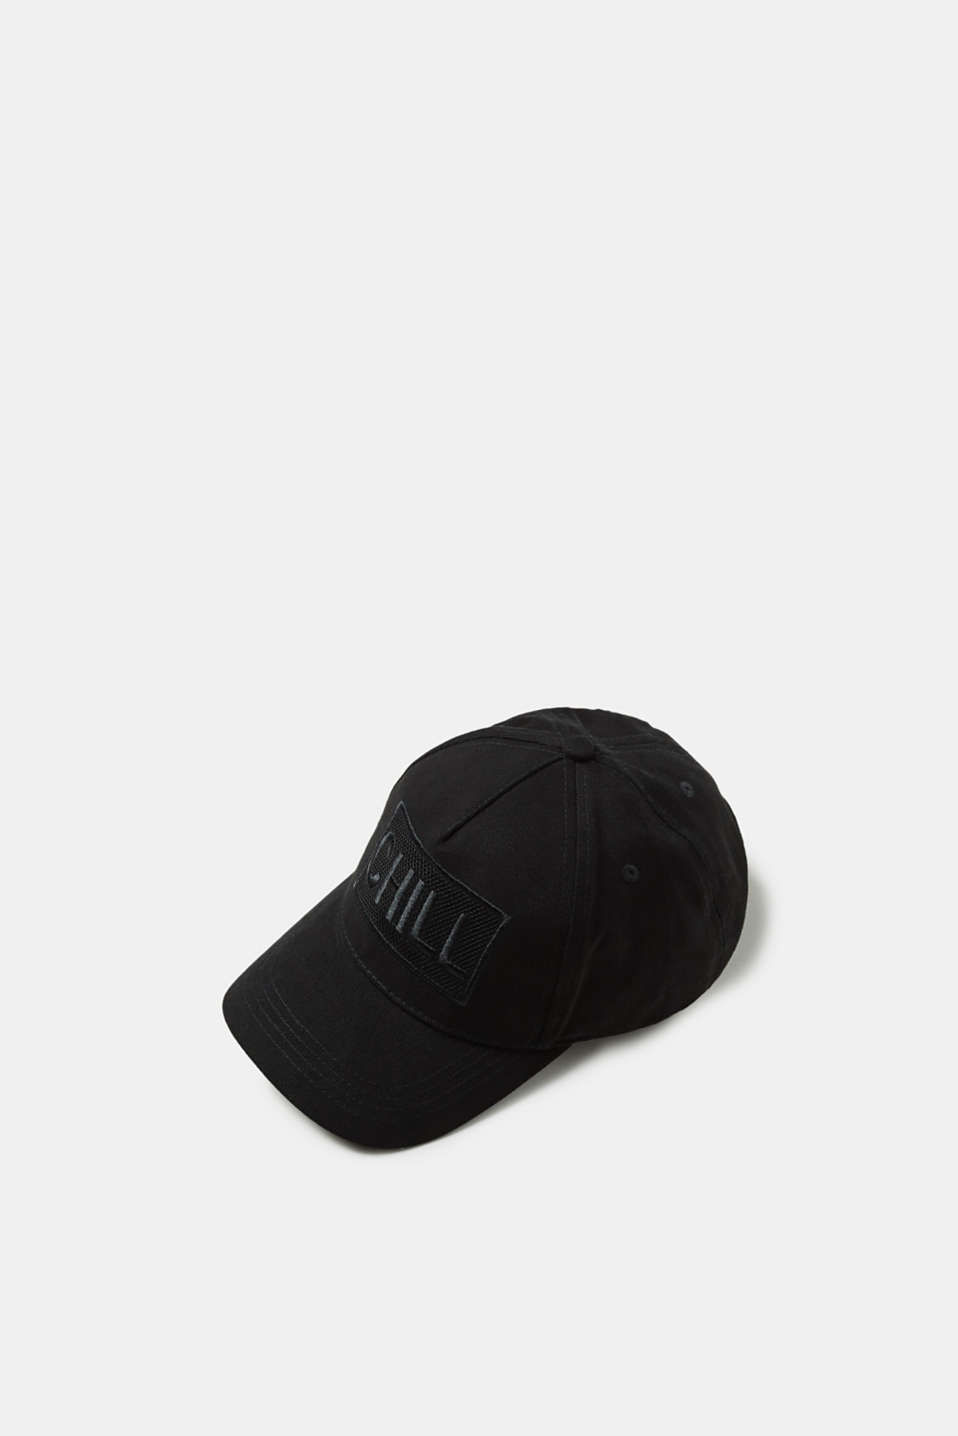 edc - Baseball cap with statement, 100% cotton